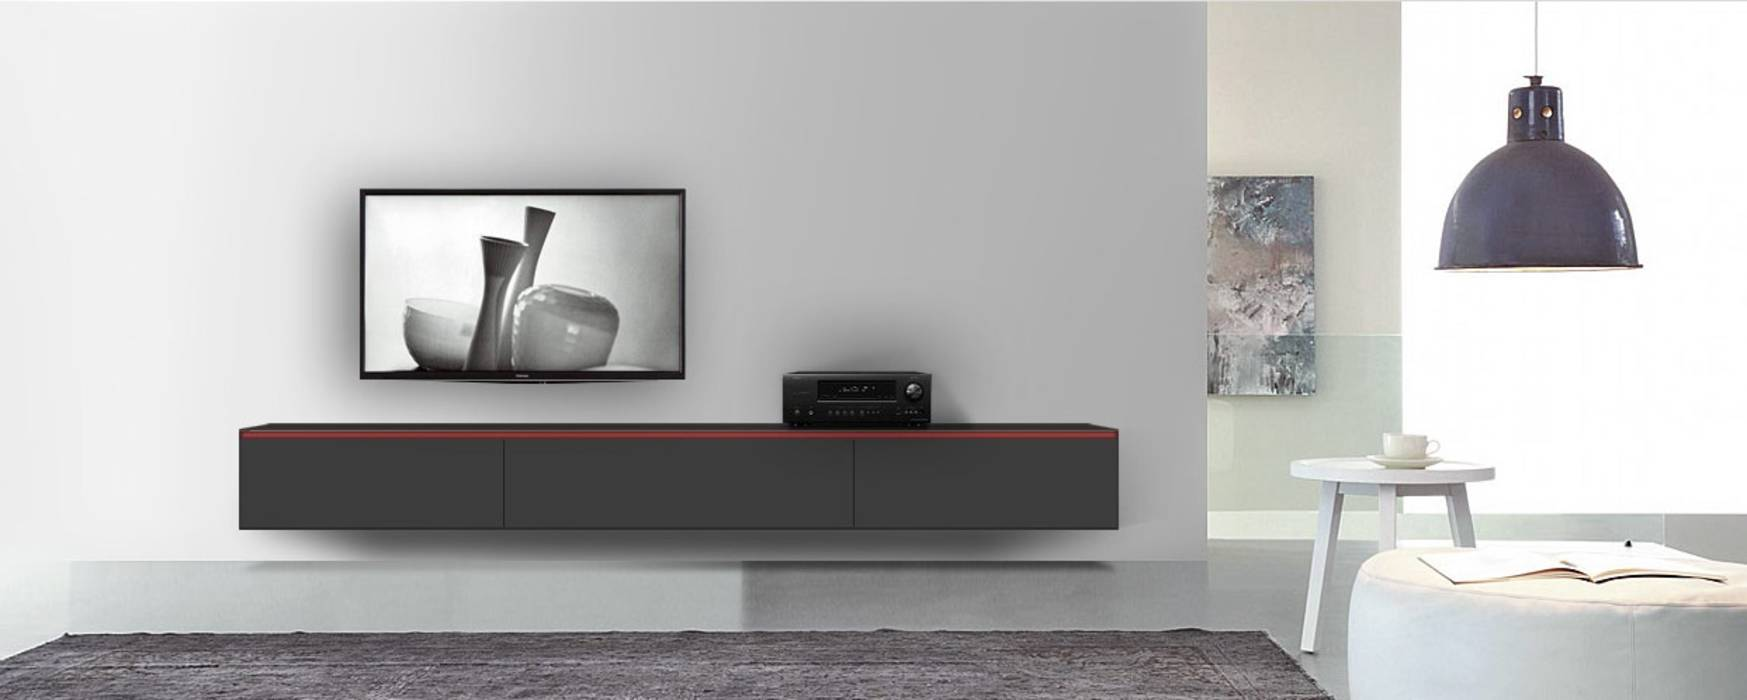 moderne wohnzimmer bilder reverse tv lowboard konfigurator 3m schwarz matt mit griff rot homify. Black Bedroom Furniture Sets. Home Design Ideas